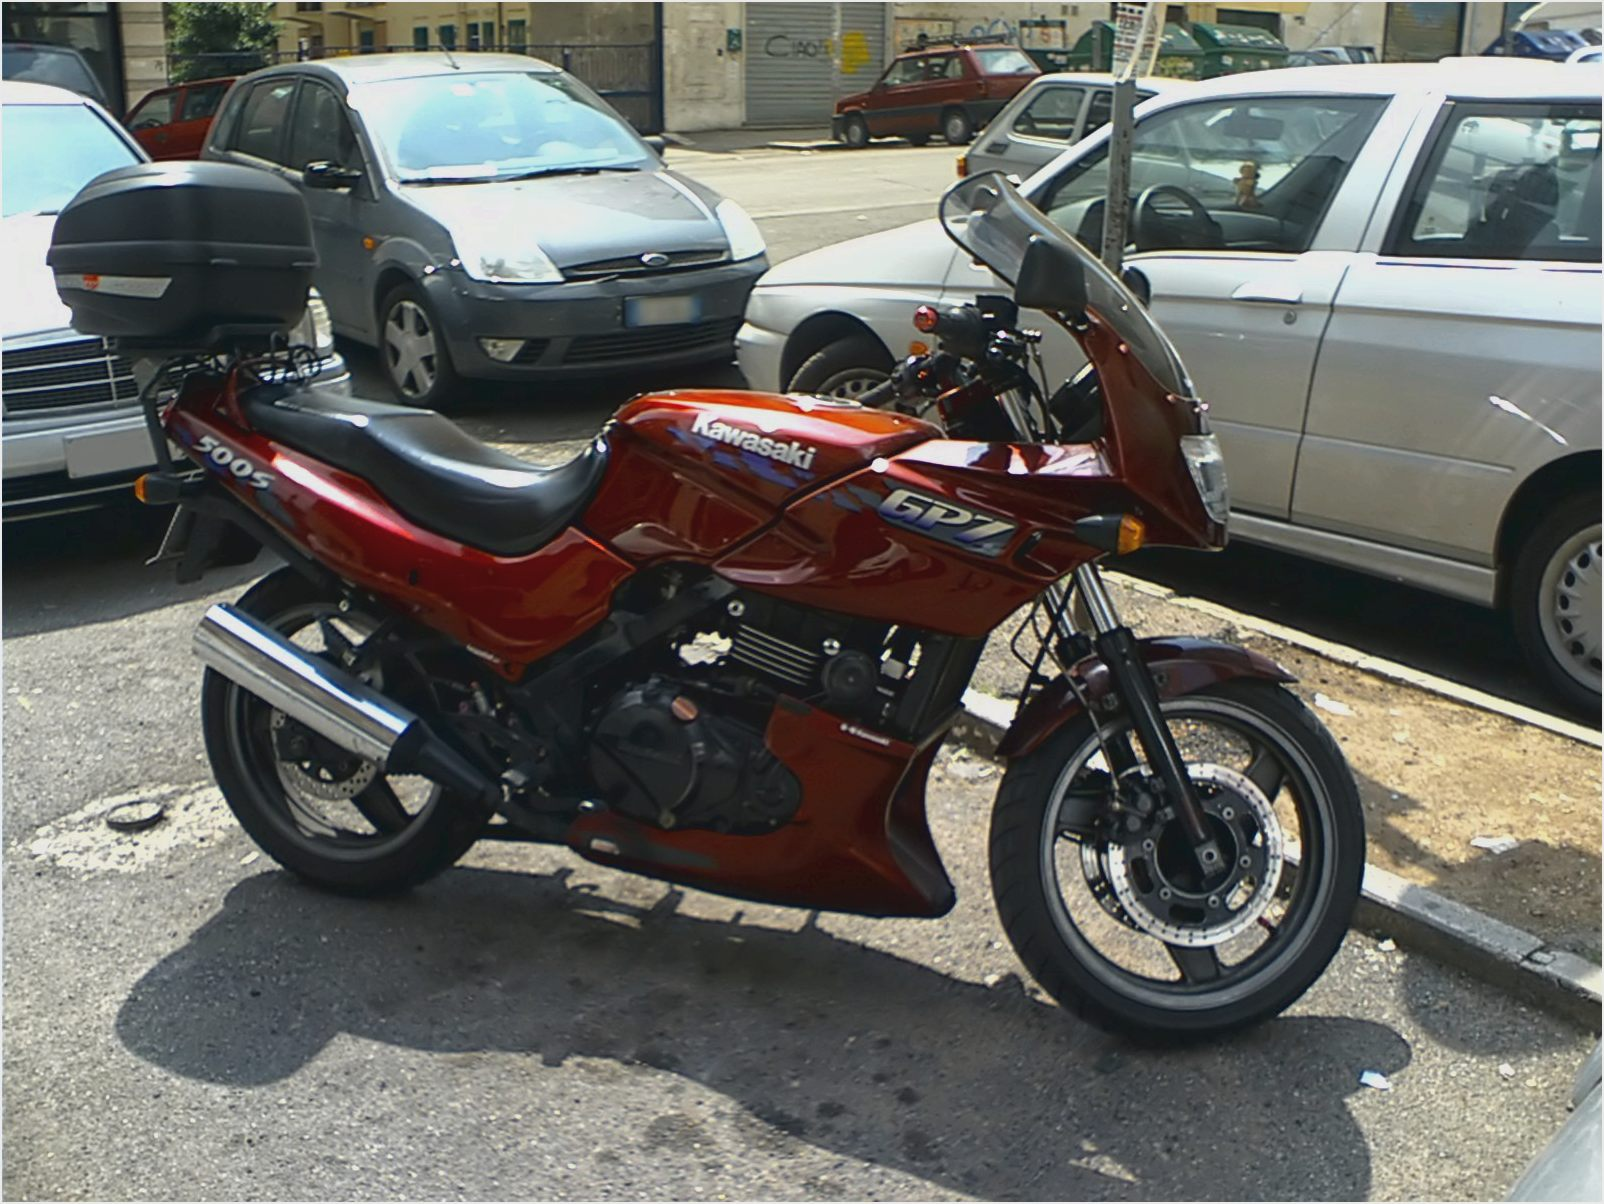 Kawasaki GPZ 500 S (reduced effect) 1993 pics #31860